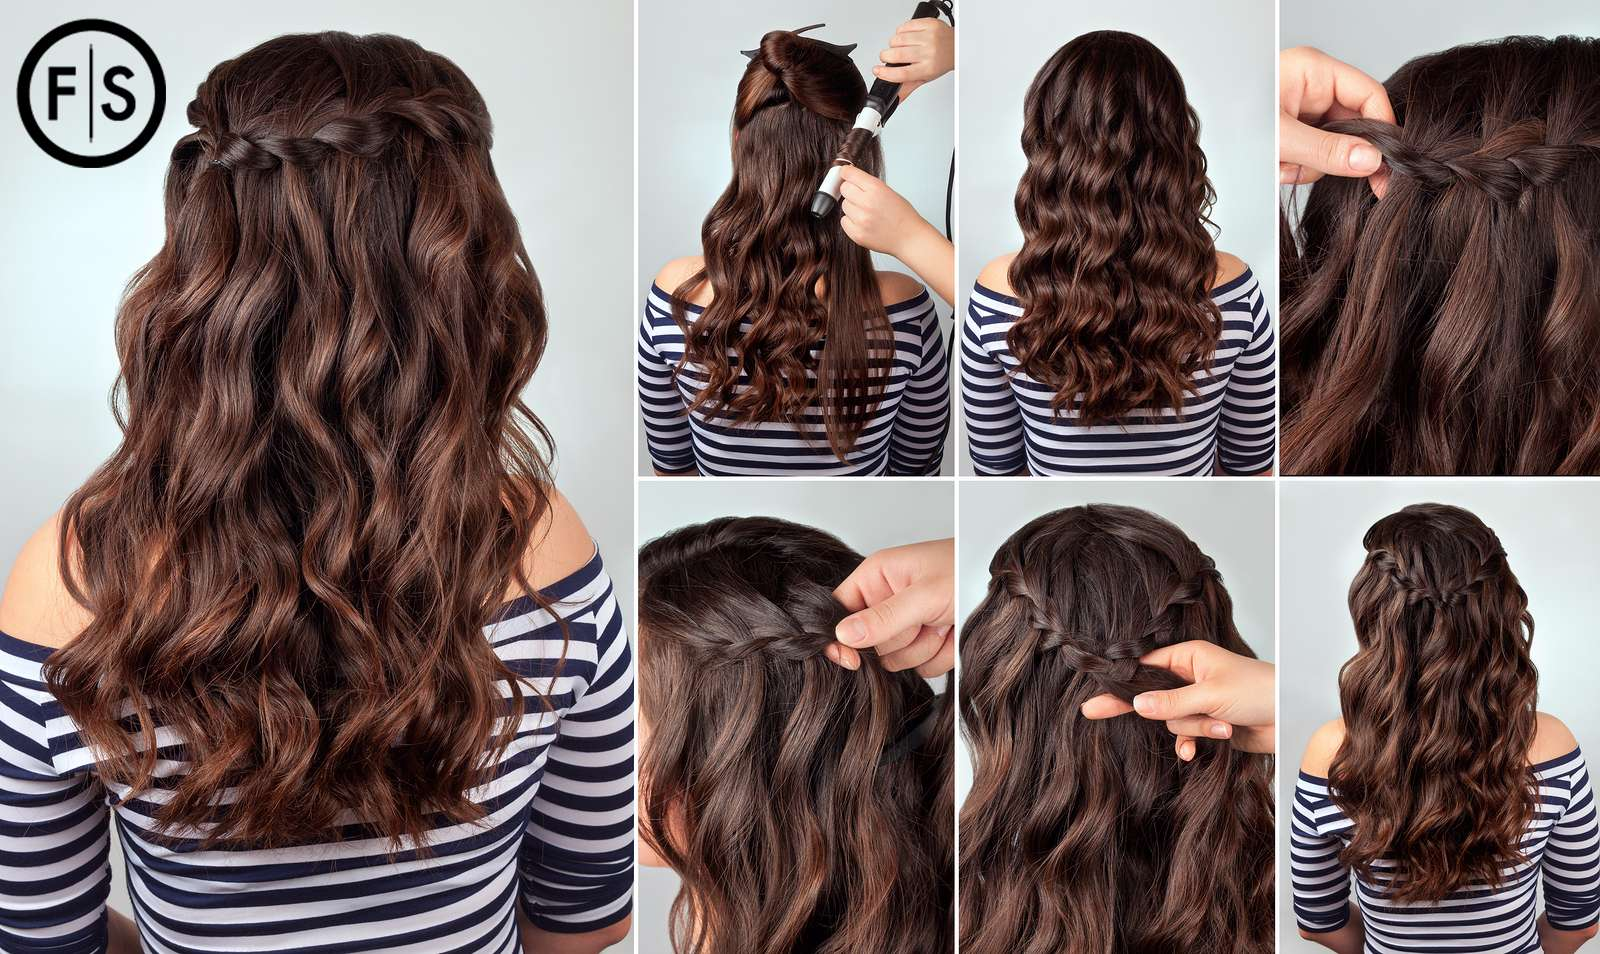 waterfall_braid.jpg